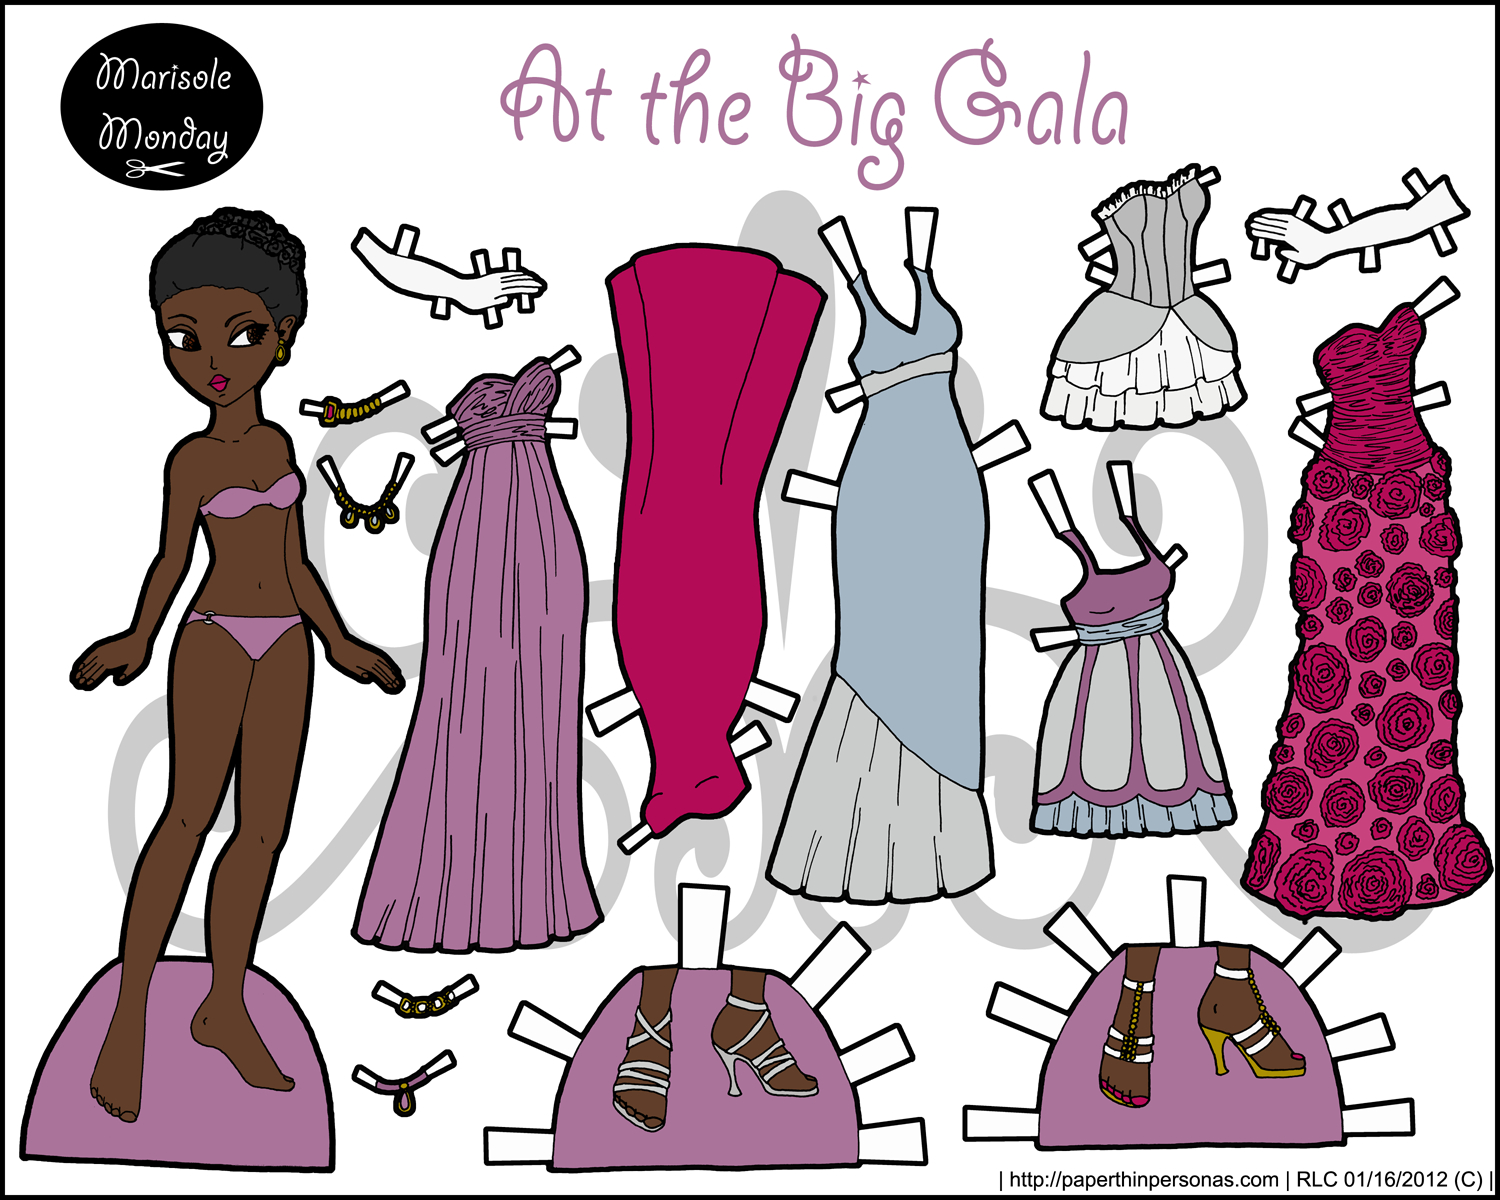 Free Printable Paper Doll- Marisole Monday - Free Printable Paper Dolls